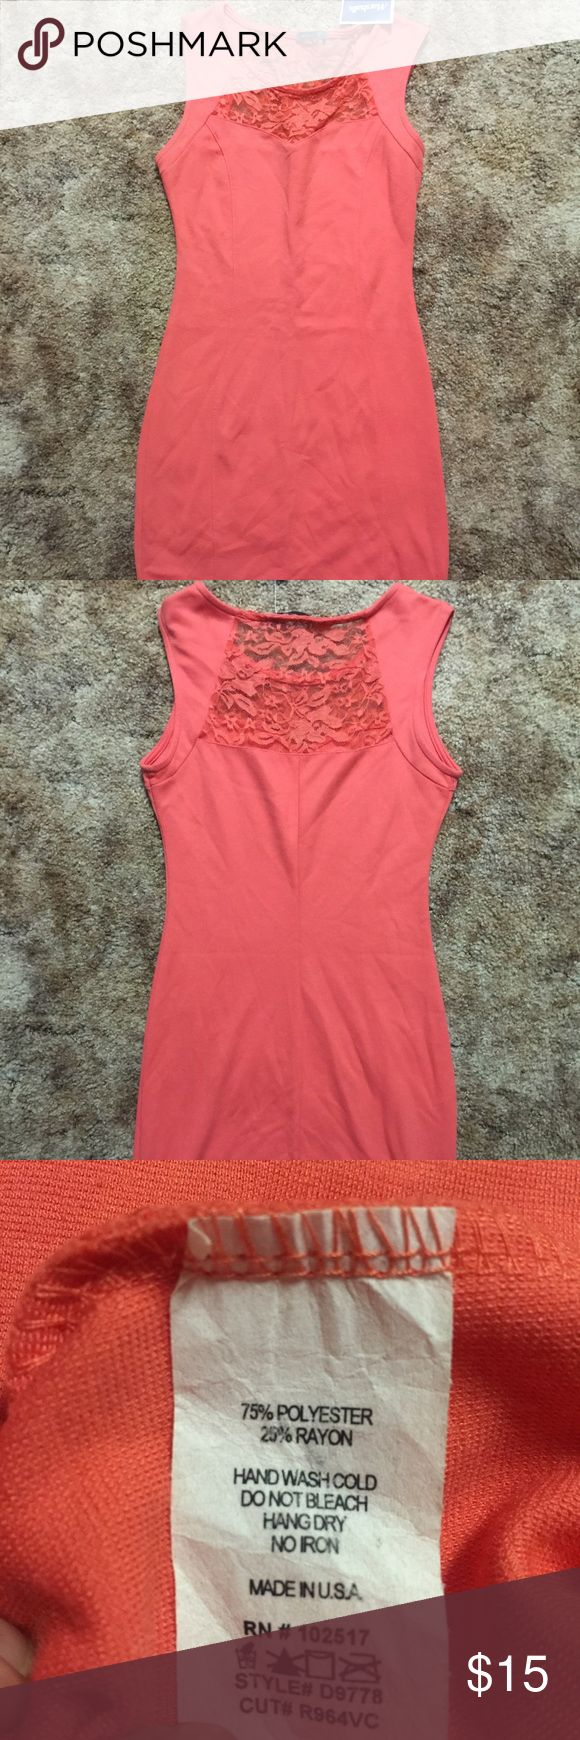 Dress Beautiful coral colored dress. Stretch material never been worn Dresses Mini